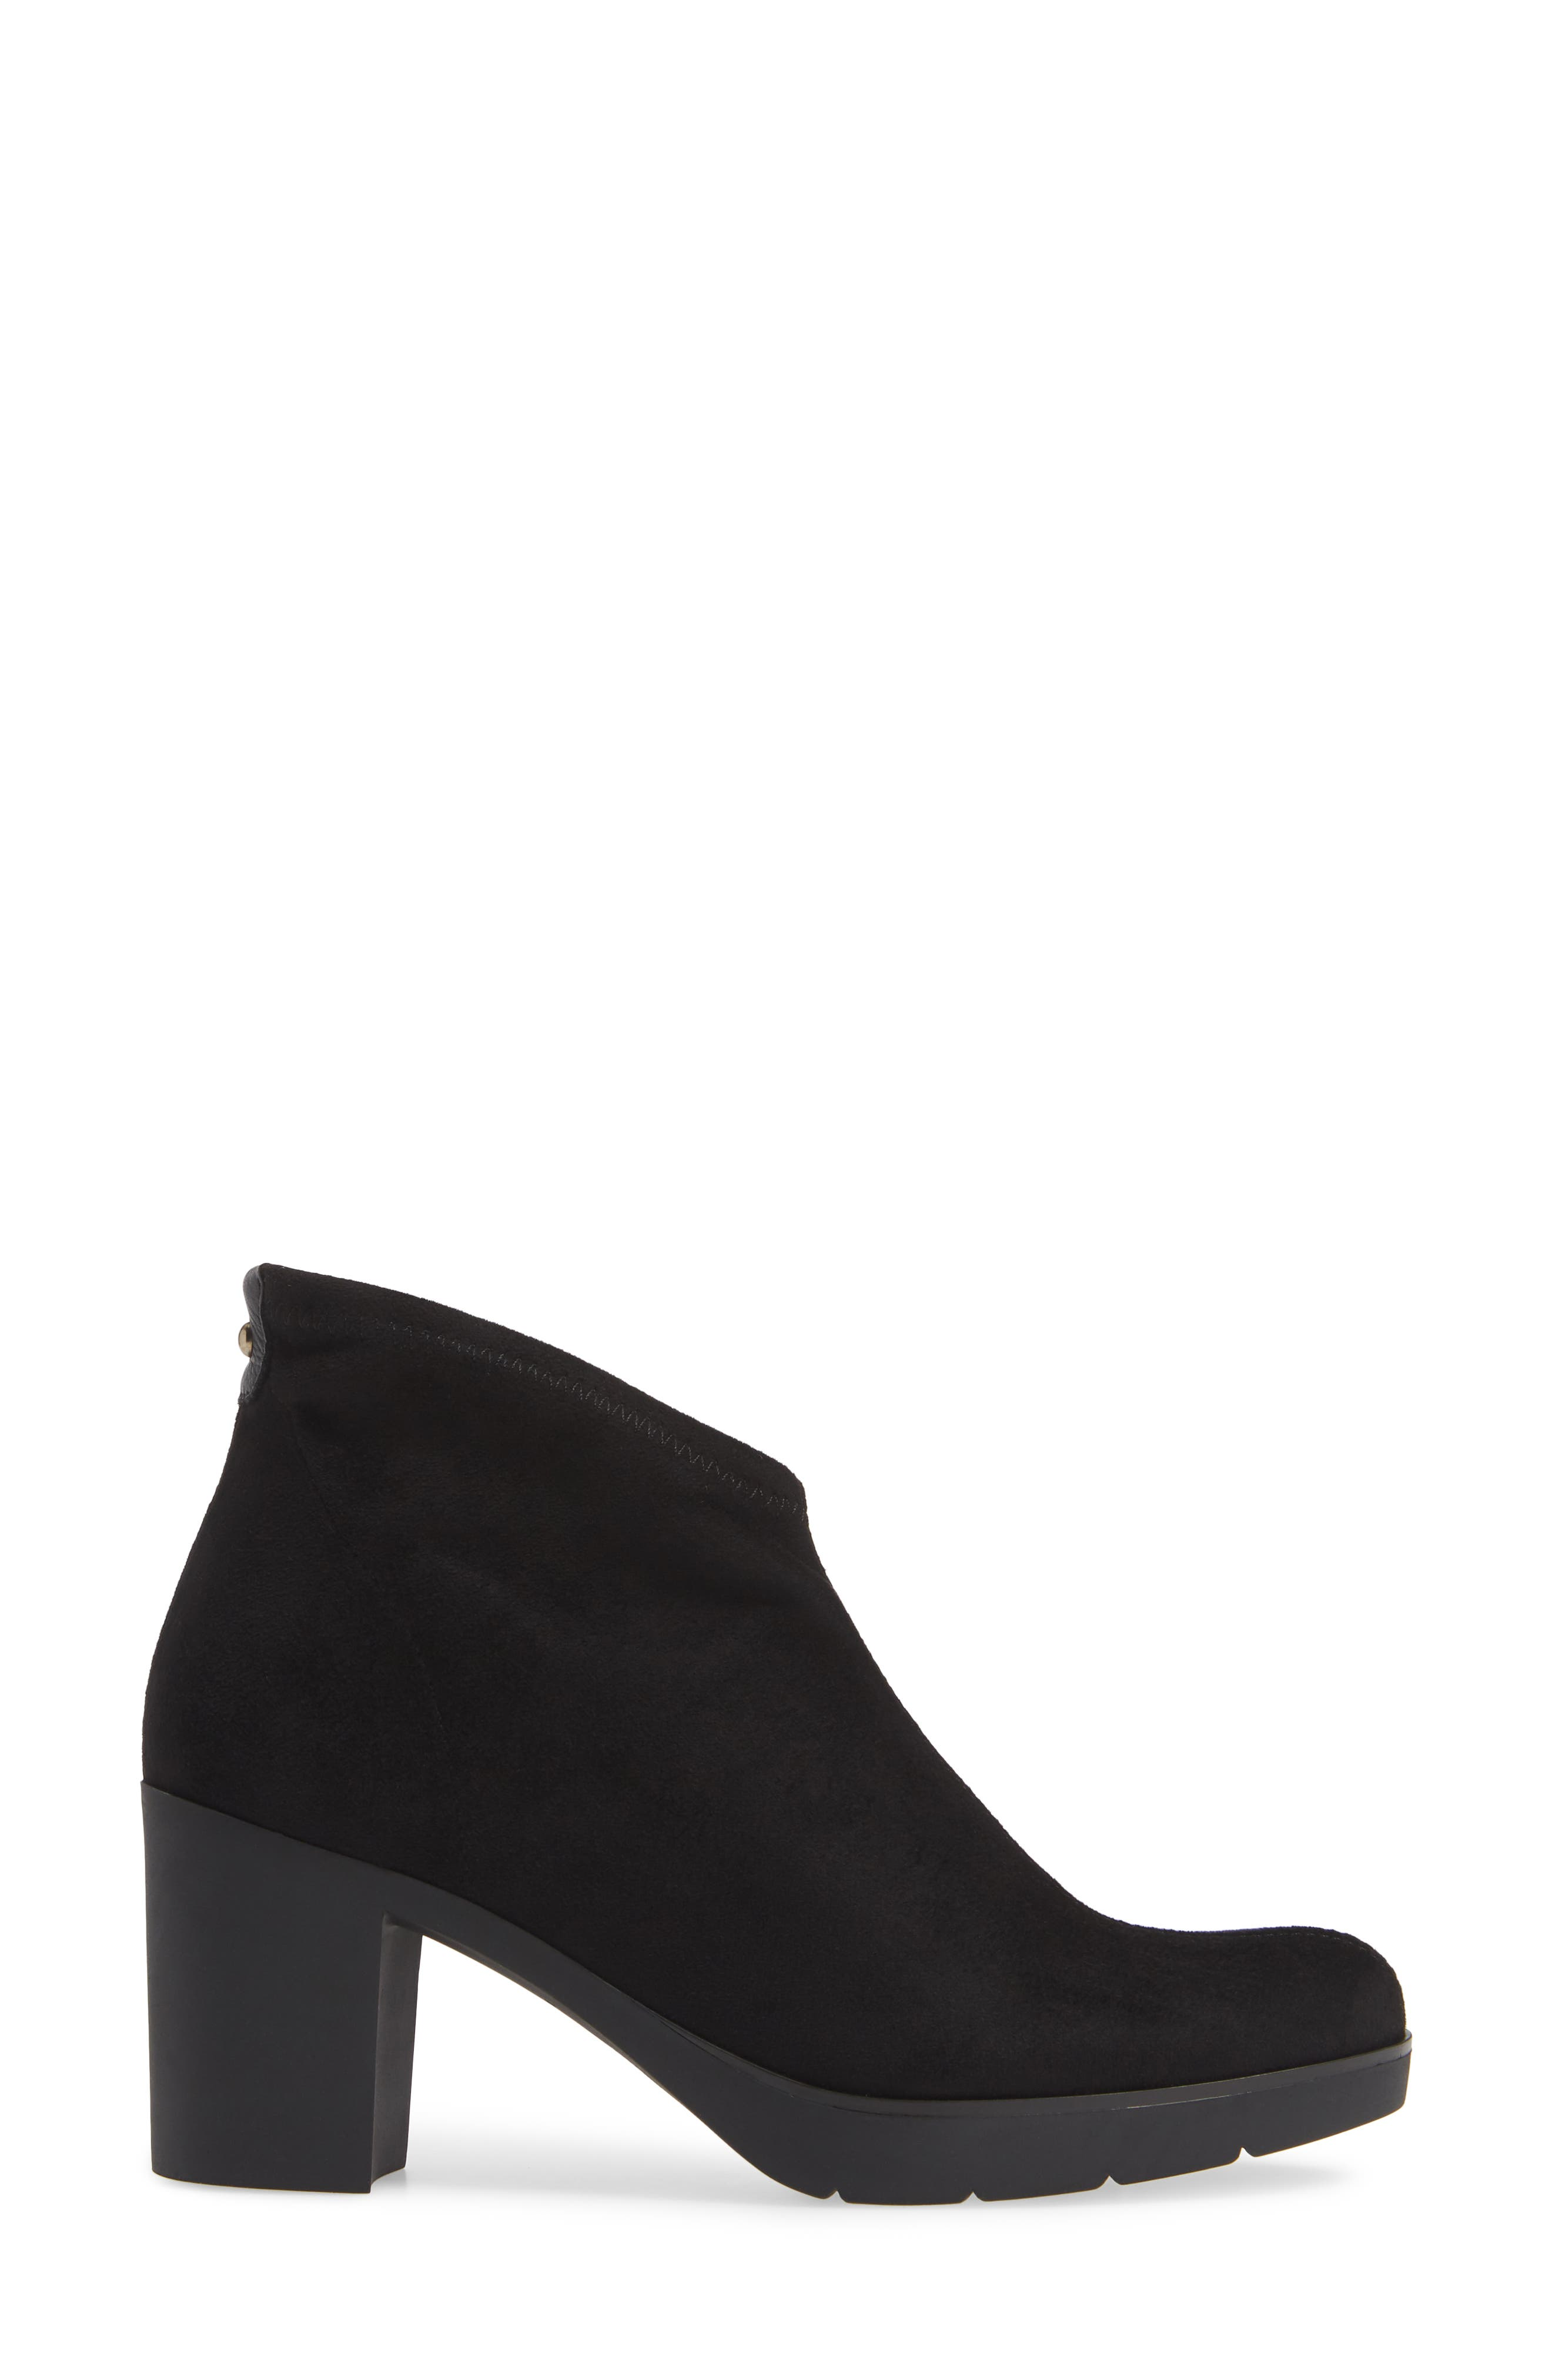 'Finley' Bootie,                             Alternate thumbnail 3, color,                             BLACK/ BLACK FABRIC